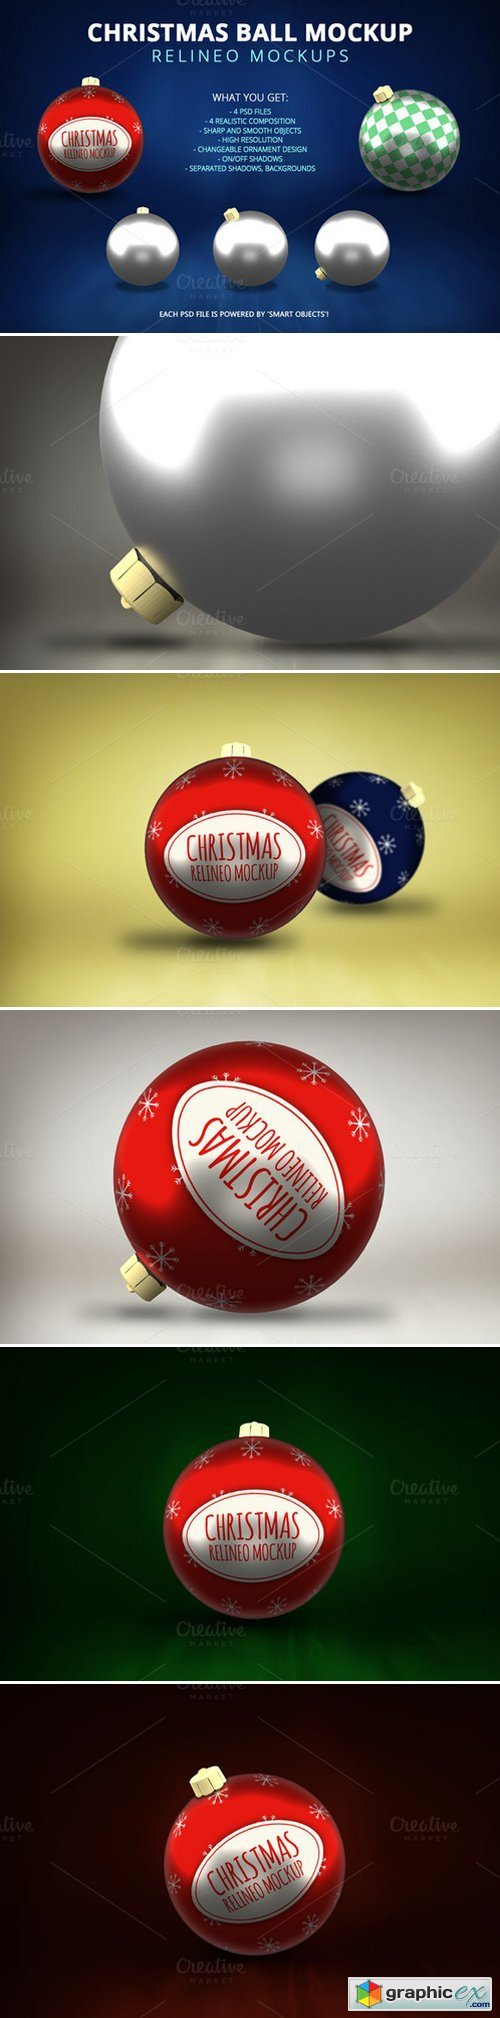 RELINEO - Christmas Ball Mockup Pack